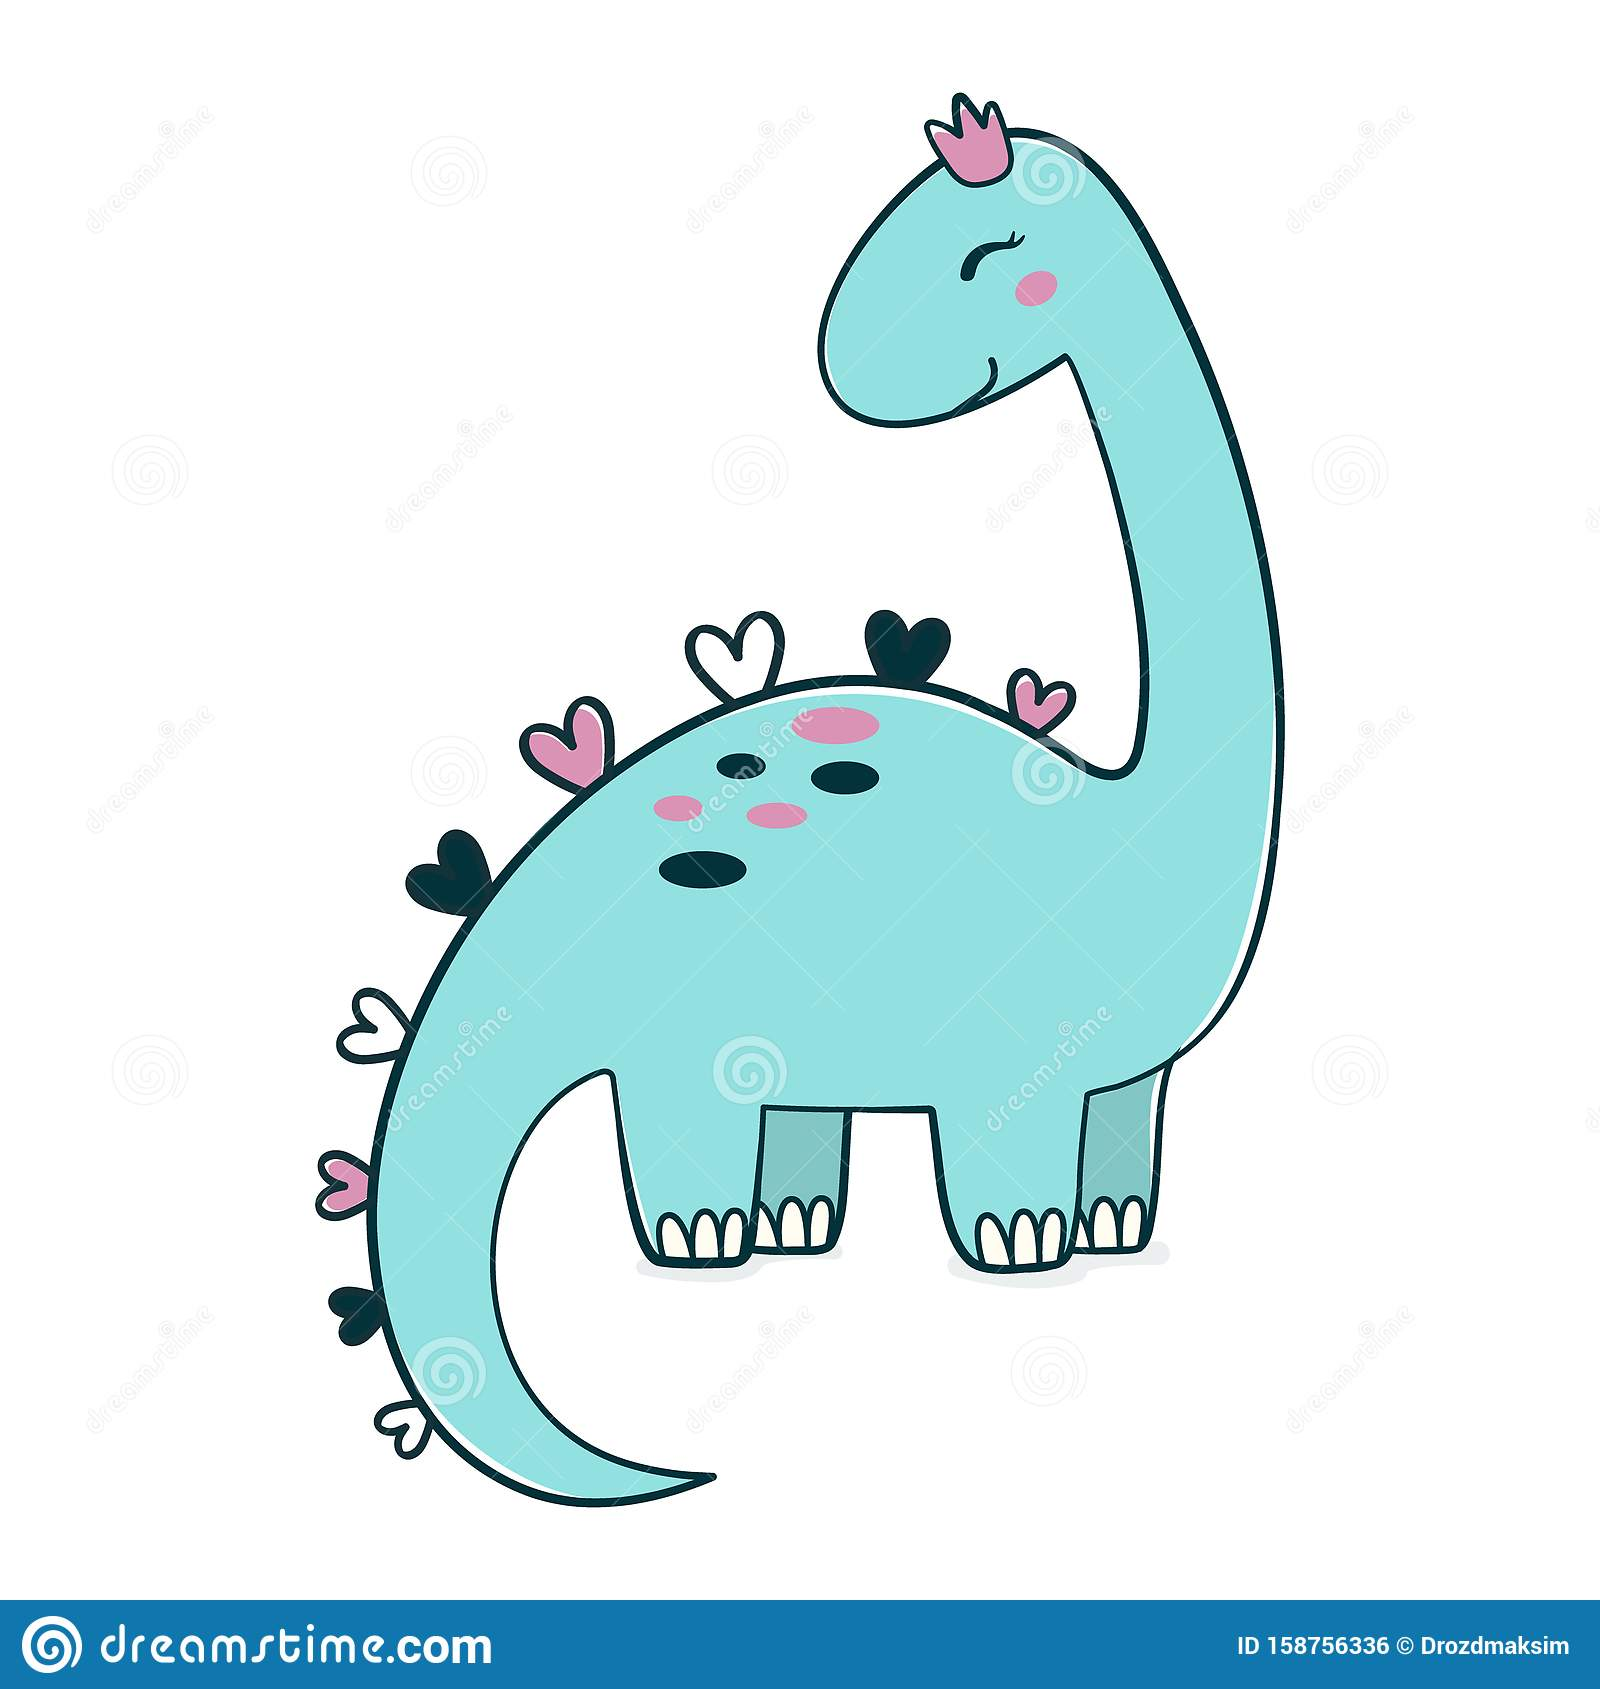 Simple Illustration Of Cartoon Dinosaur In Crown, Picture ...